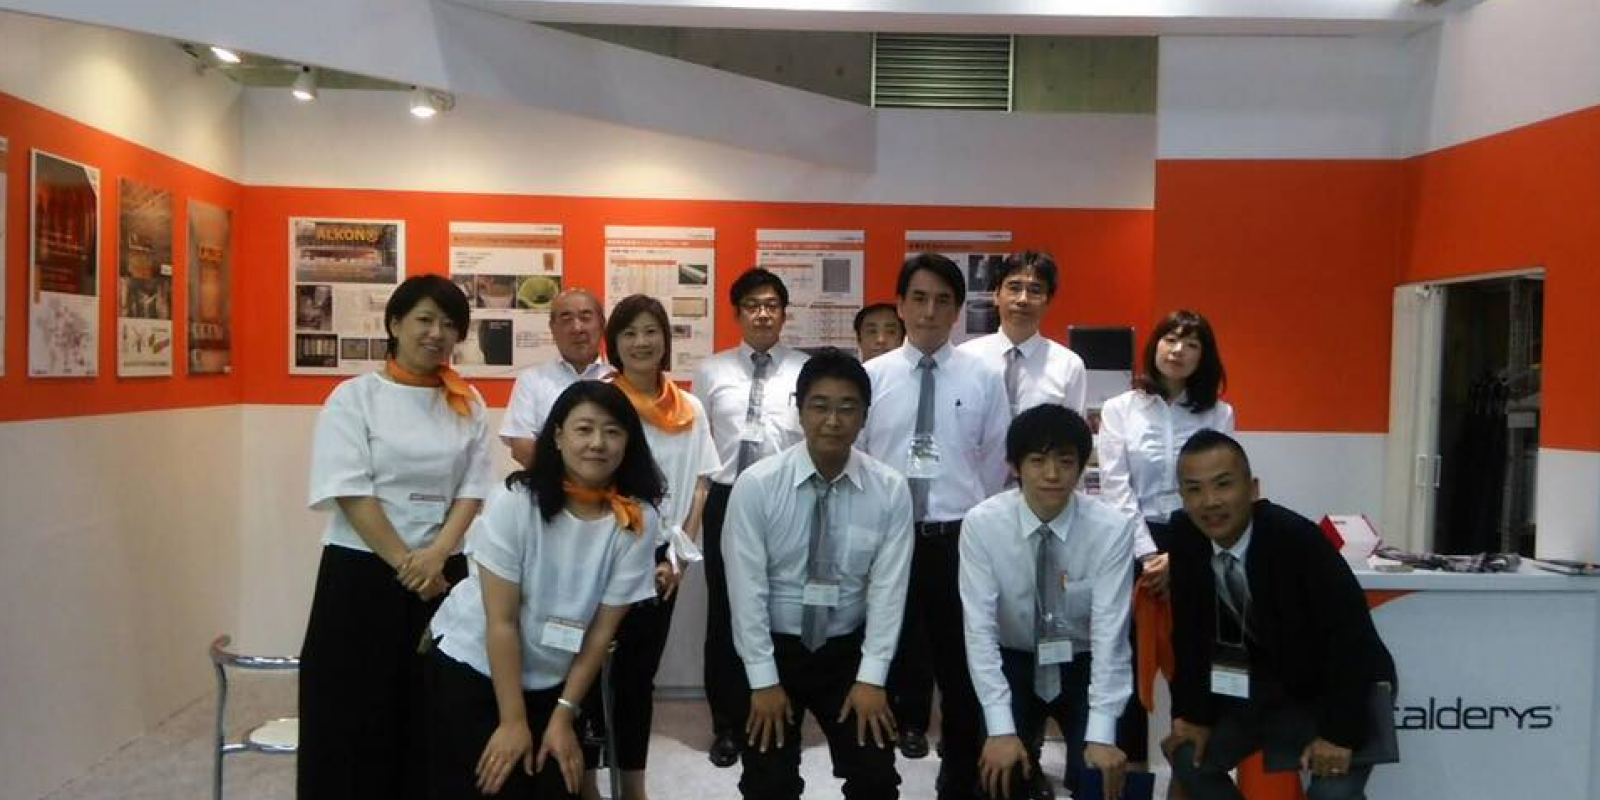 Calderys Japan Team at Thermotec 2017